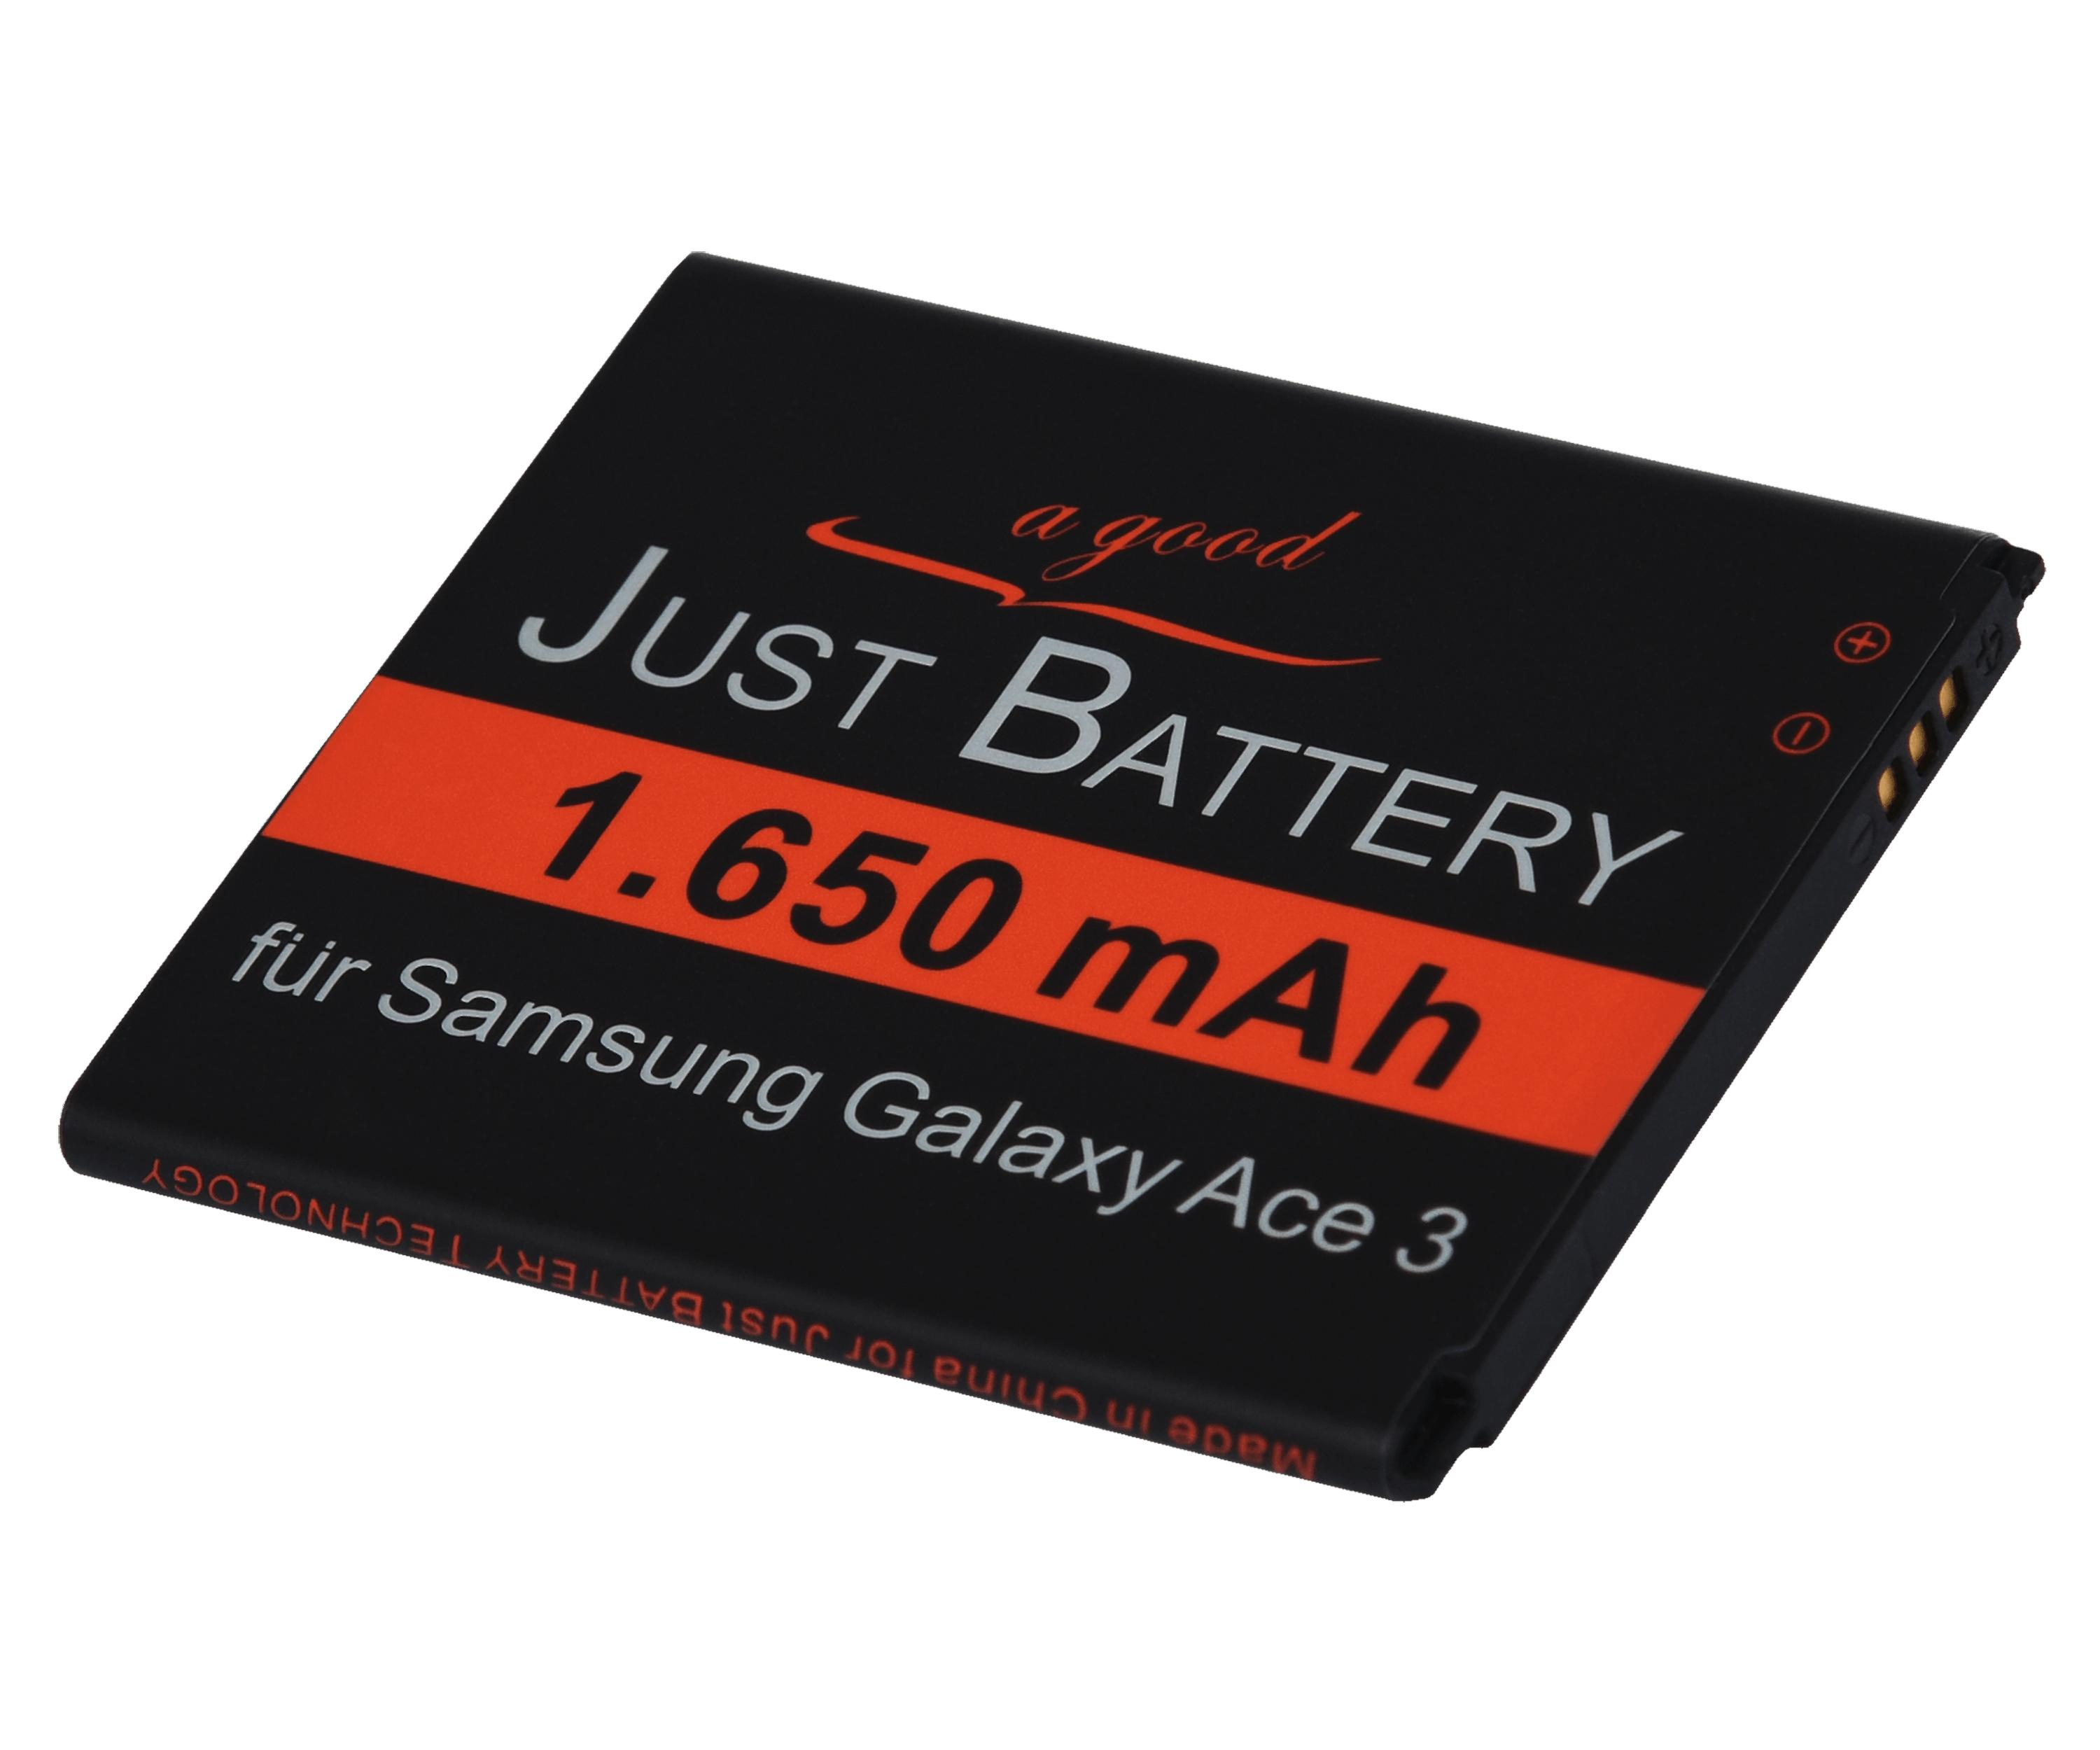 Battery for Samsung Galaxy ACE 3 3 G GT-s7270L